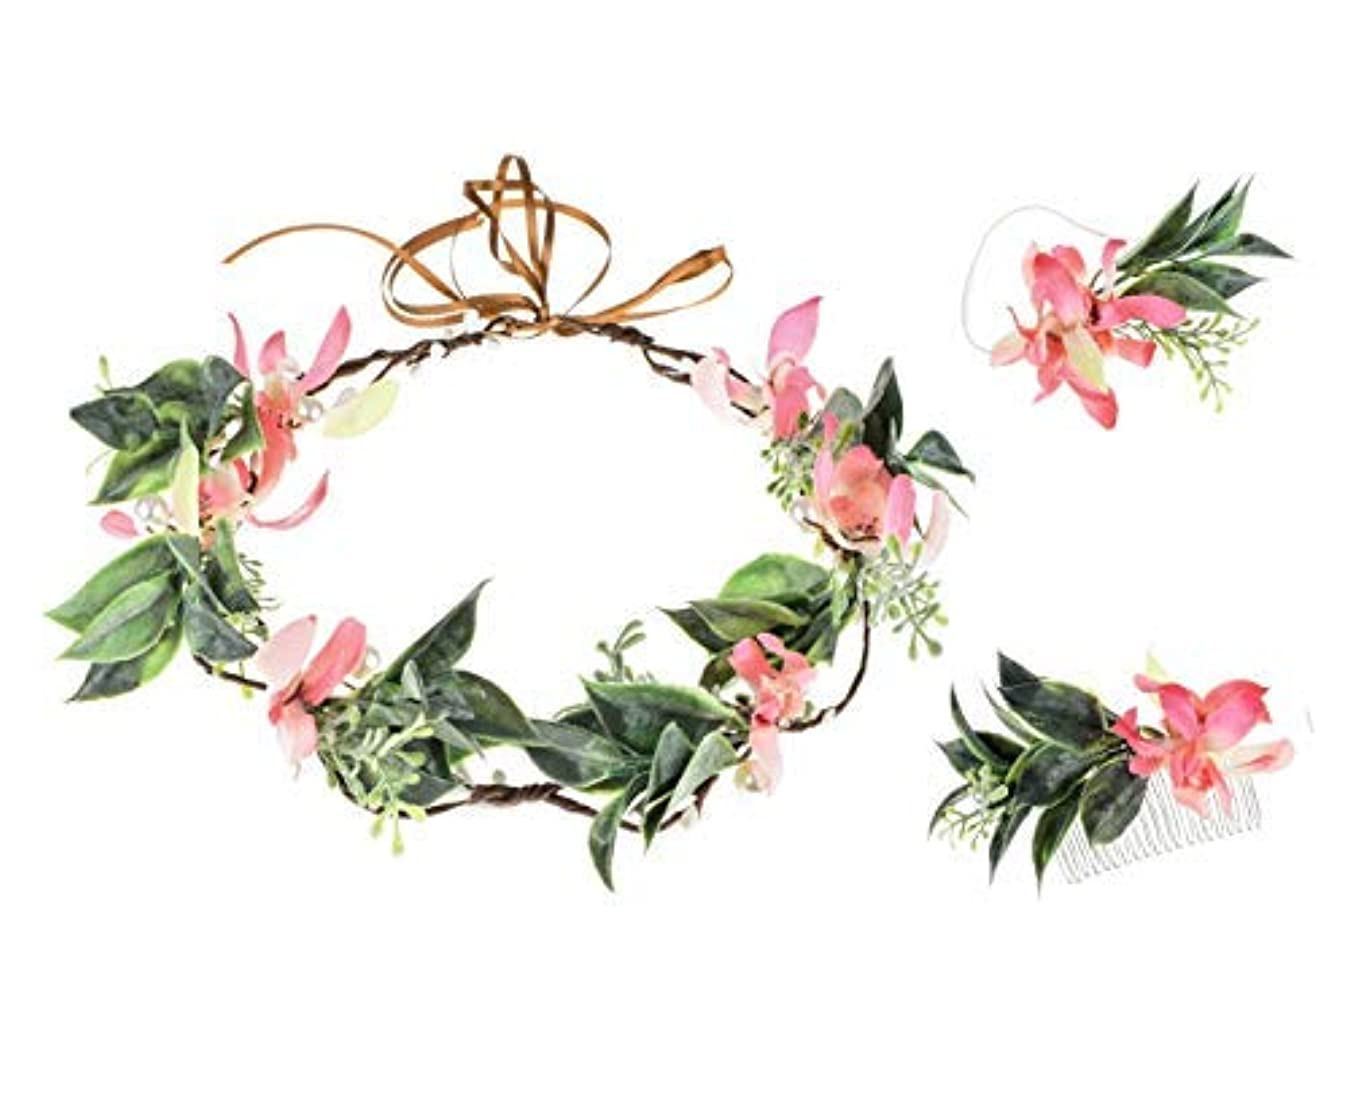 慣らす望遠鏡申請中Floral Fall Butterfly Orchid Flower Crown Hair Comb Green Leaf Wreath Bridal Wrist Flower Maternity Photo Props...